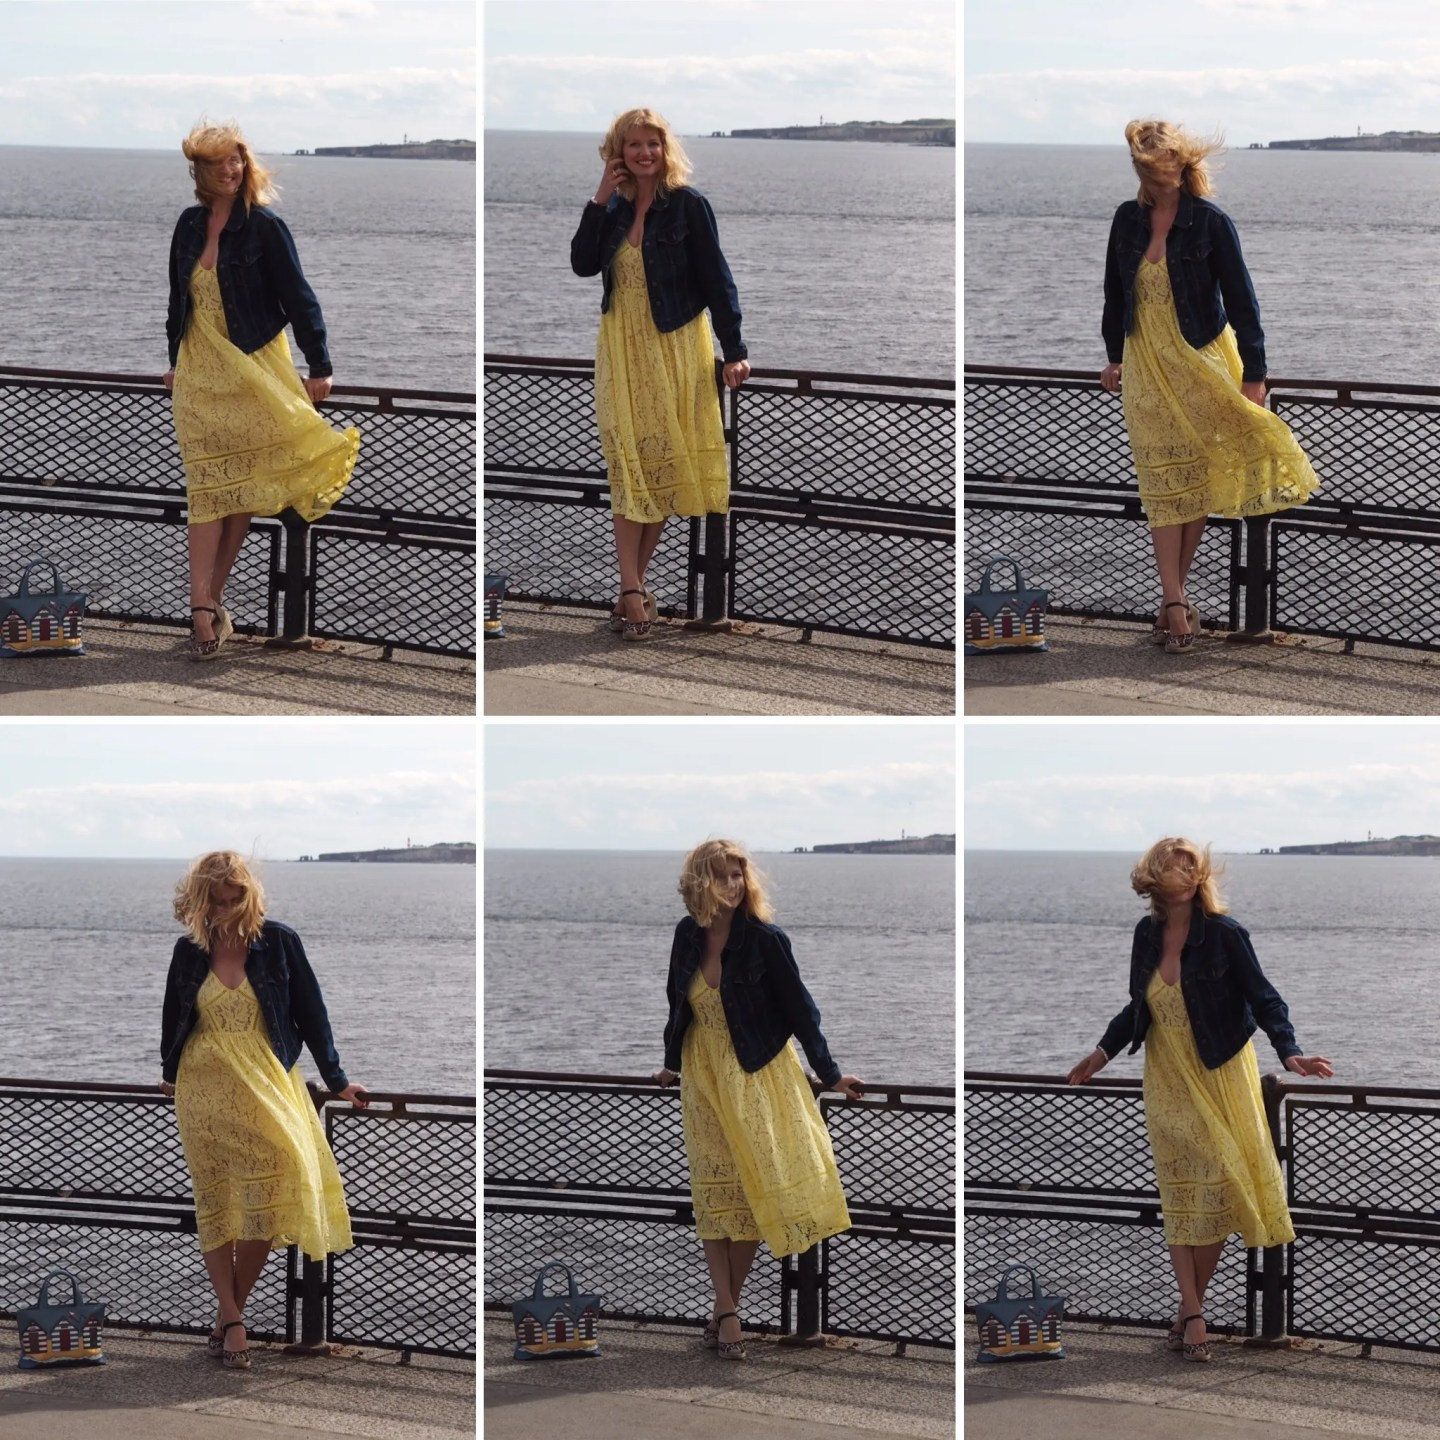 what-lizzy-loves-yellow-lace-dress-windswept-hair-outtakes-bloopers